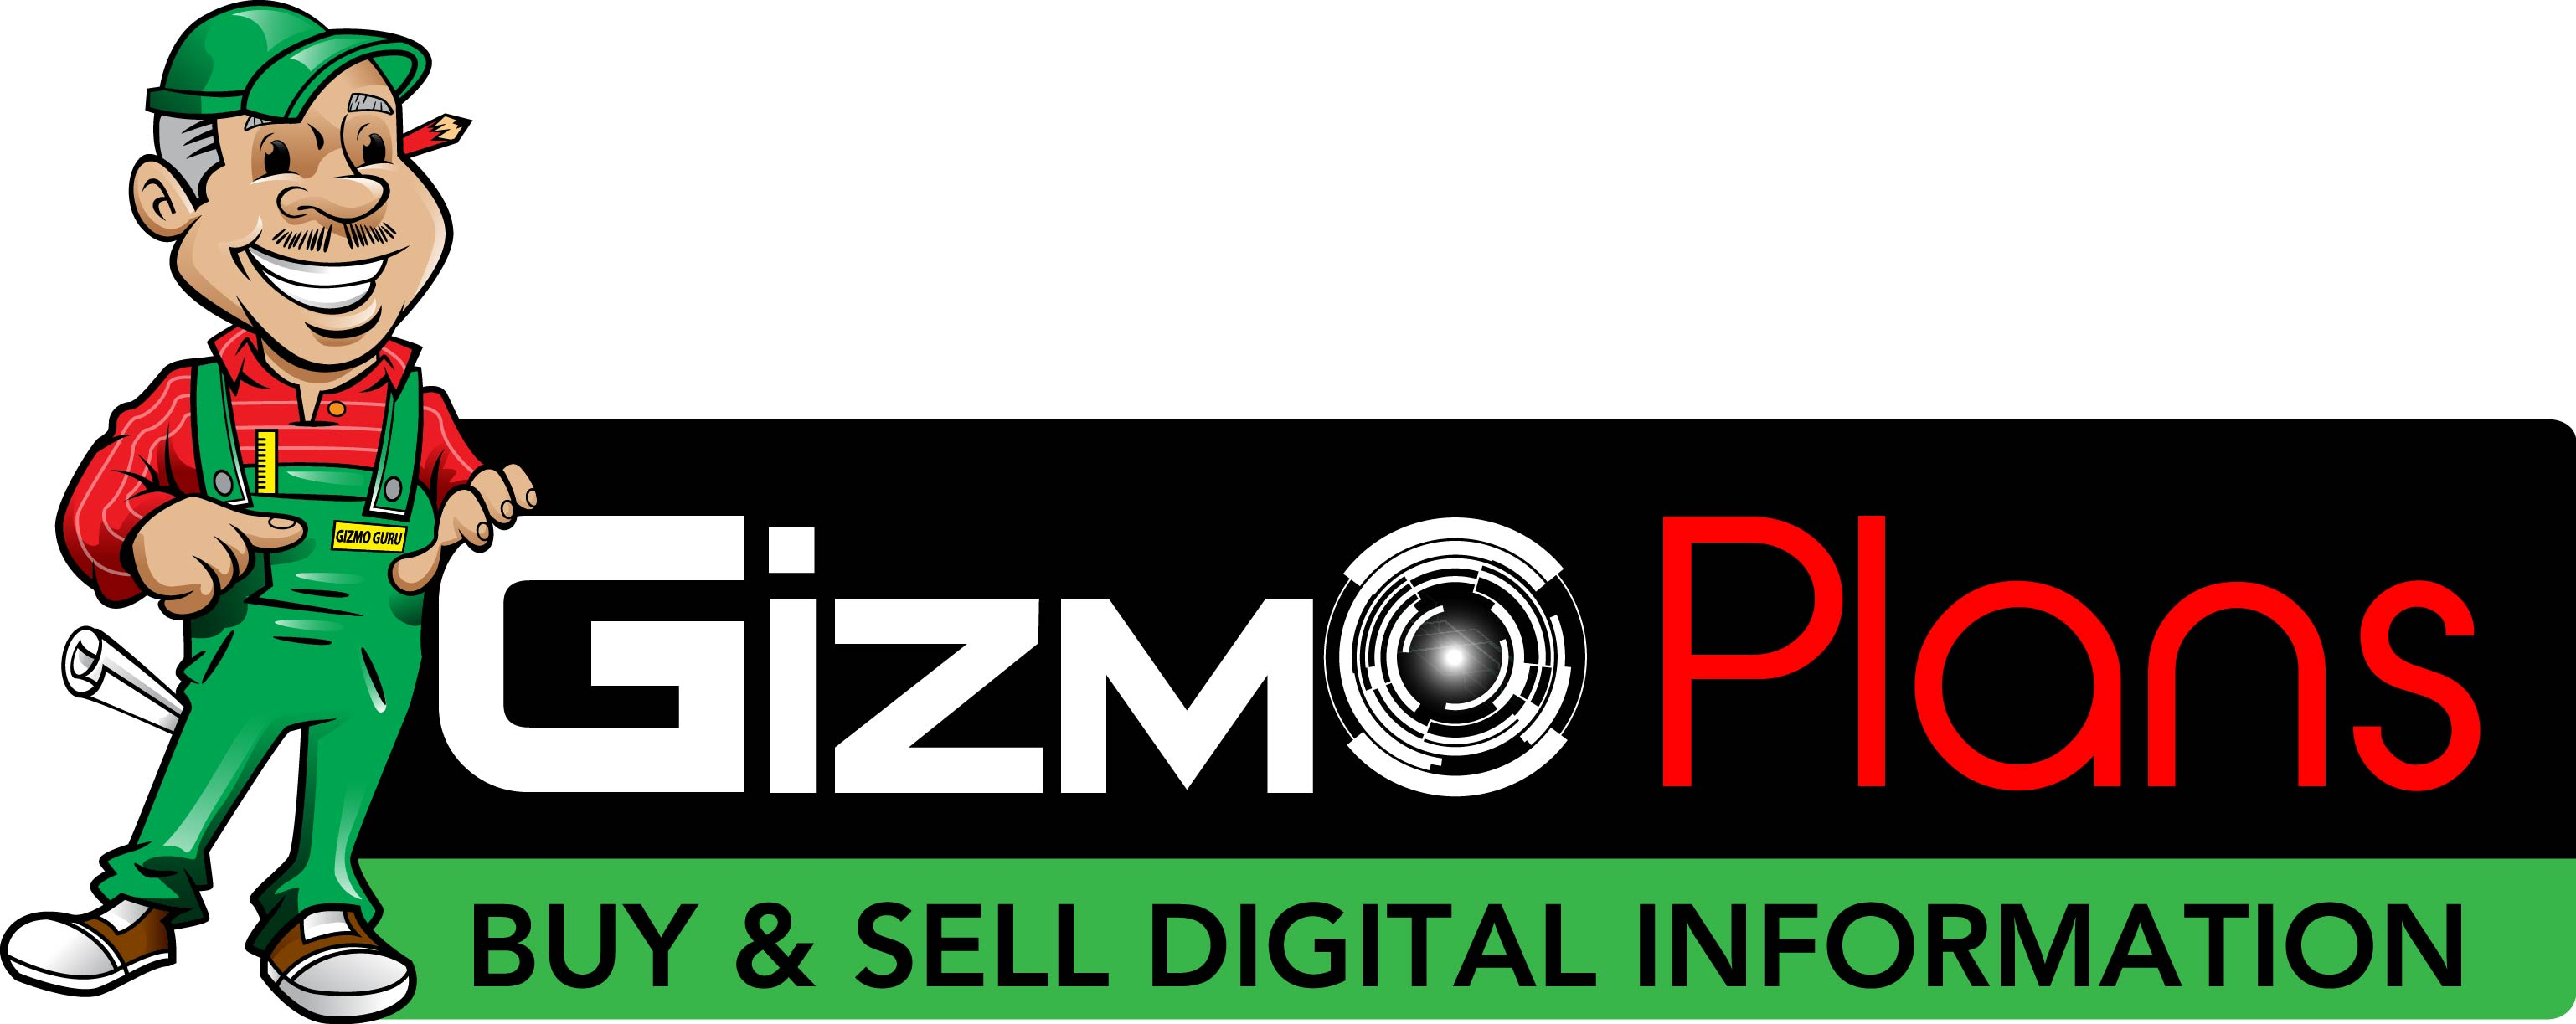 Gizmoplans - Buy and Sell Digital Products